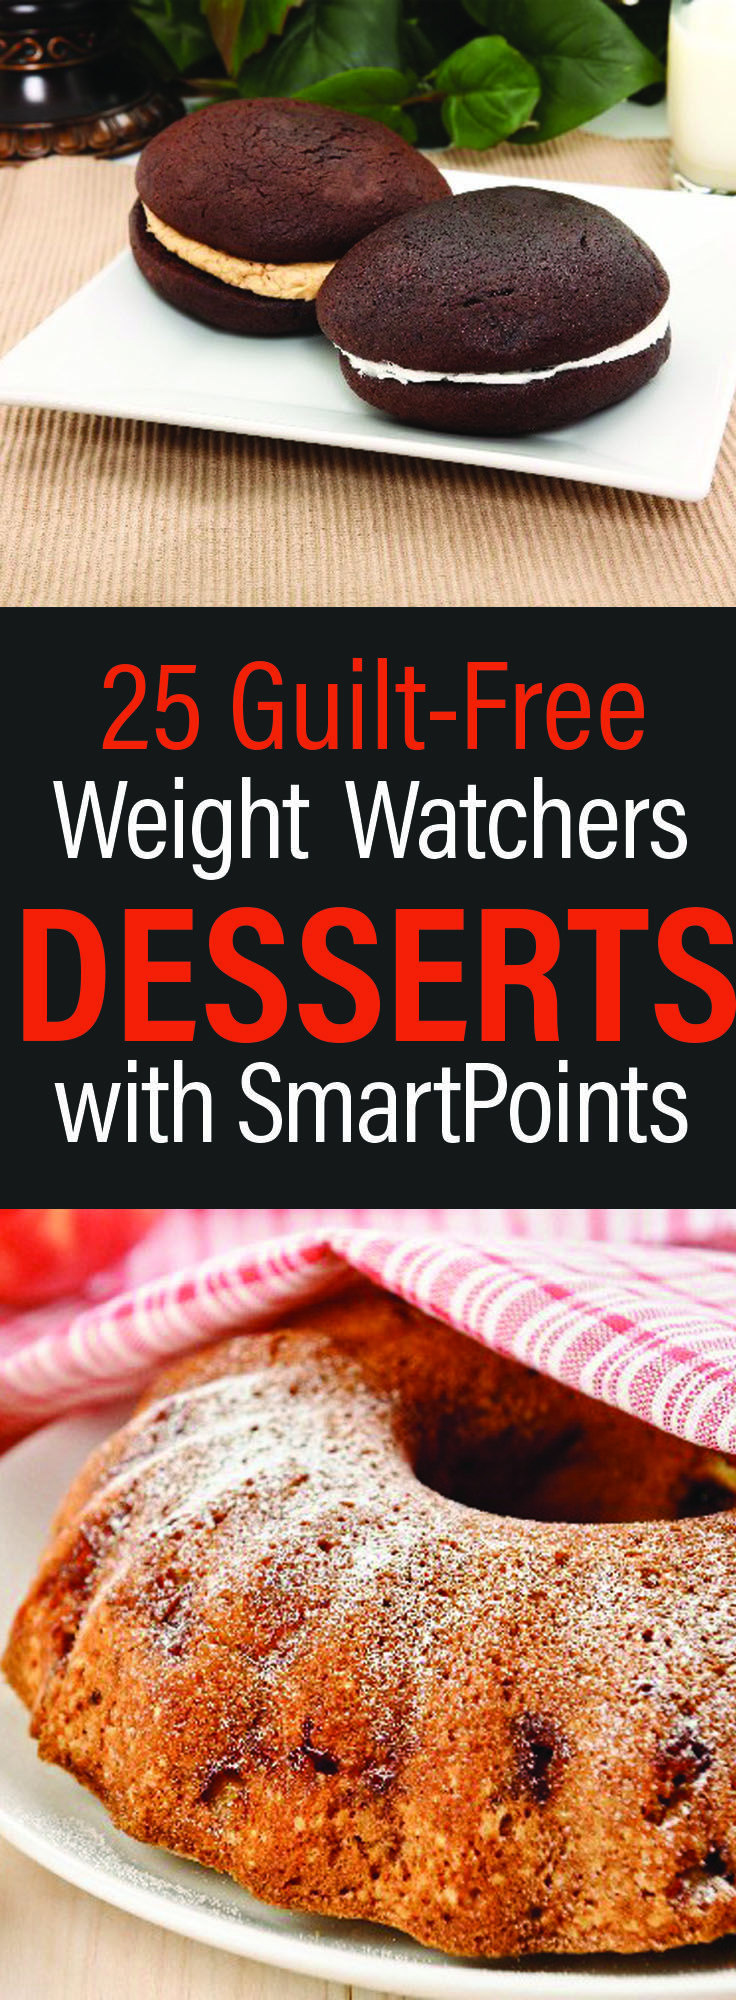 25 Guilt-Free Weight Watchers Desserts with SmartPoints